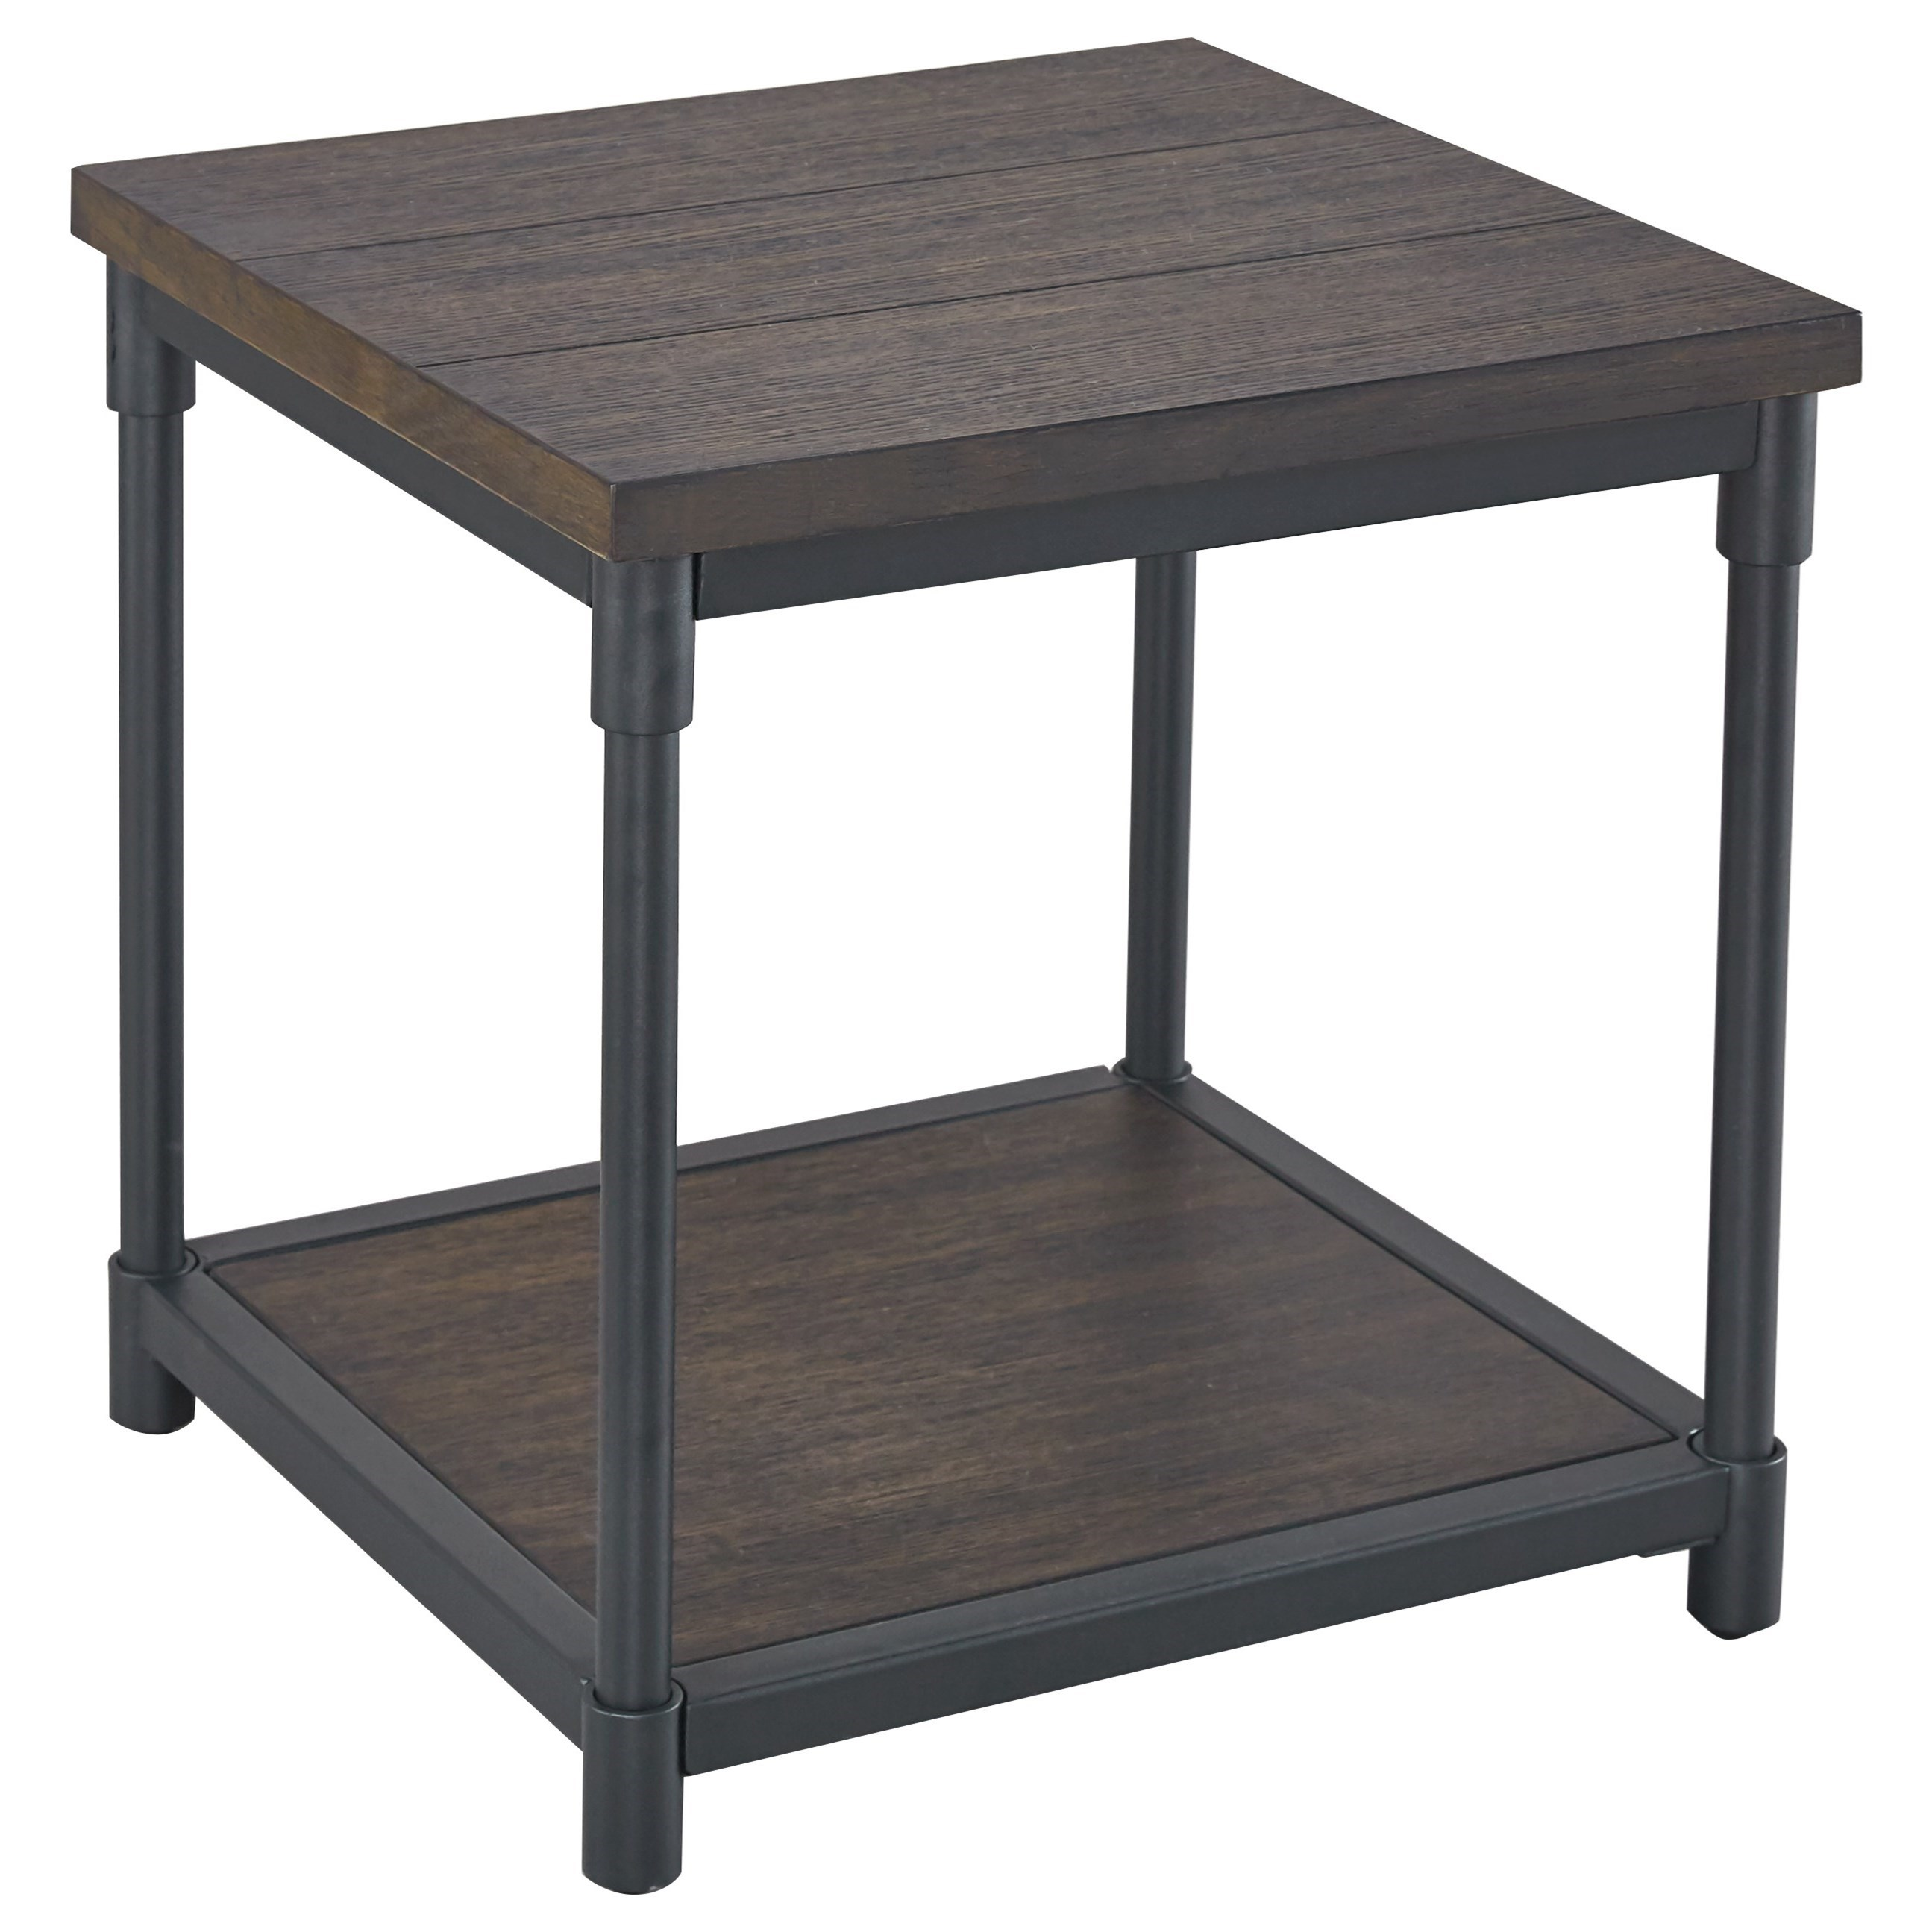 Prescott End Table by Steve Silver at Darvin Furniture